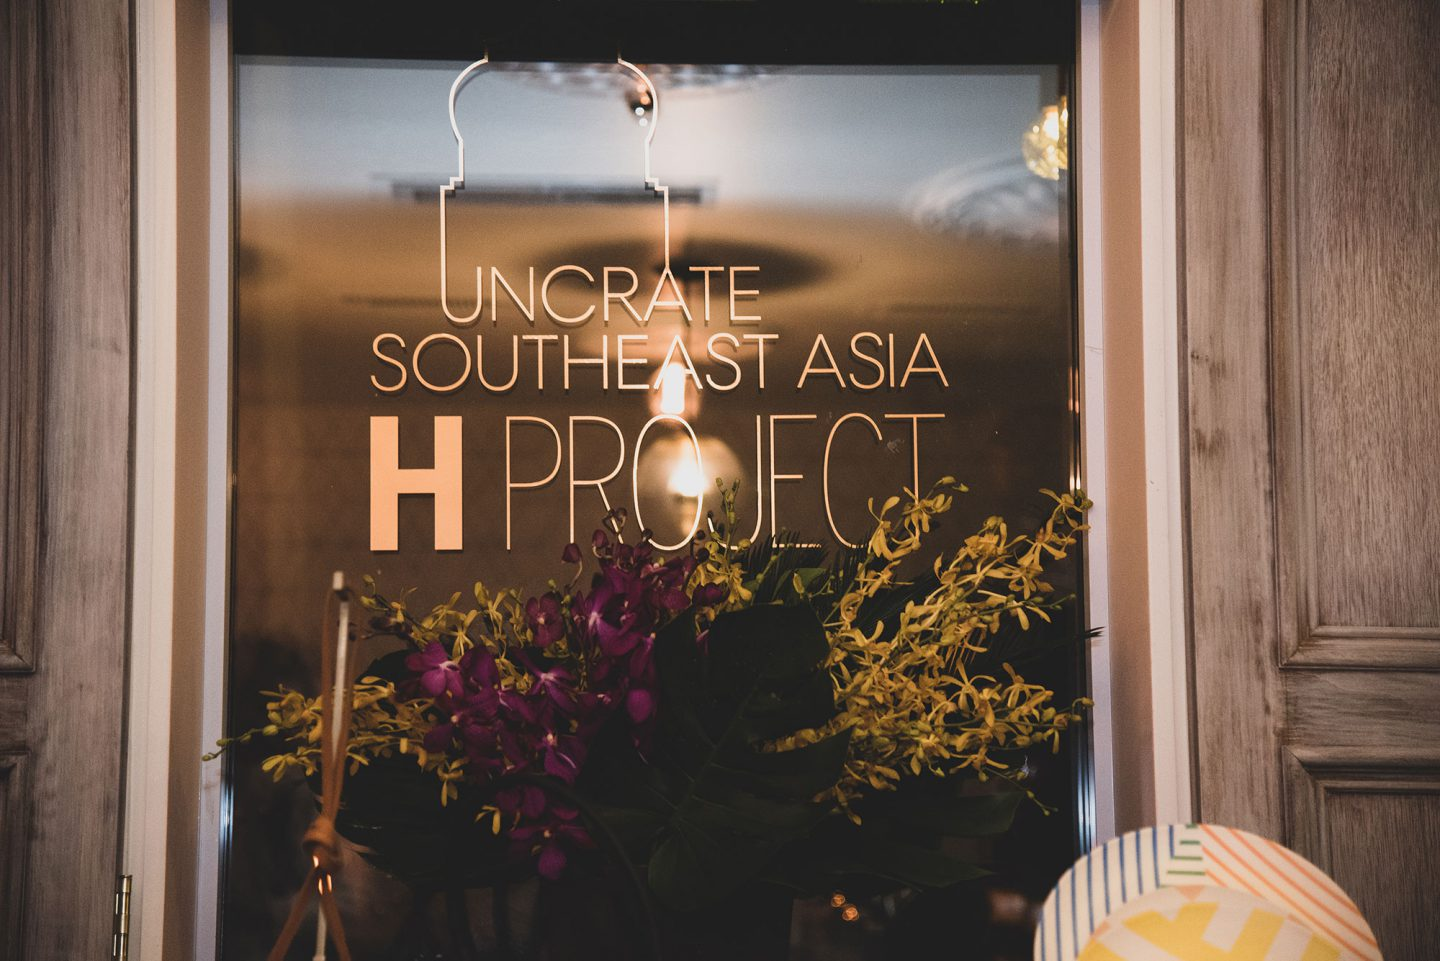 Holt Renfrew, Uncrate Southeast Asia, press preview, Genevieve Wright.